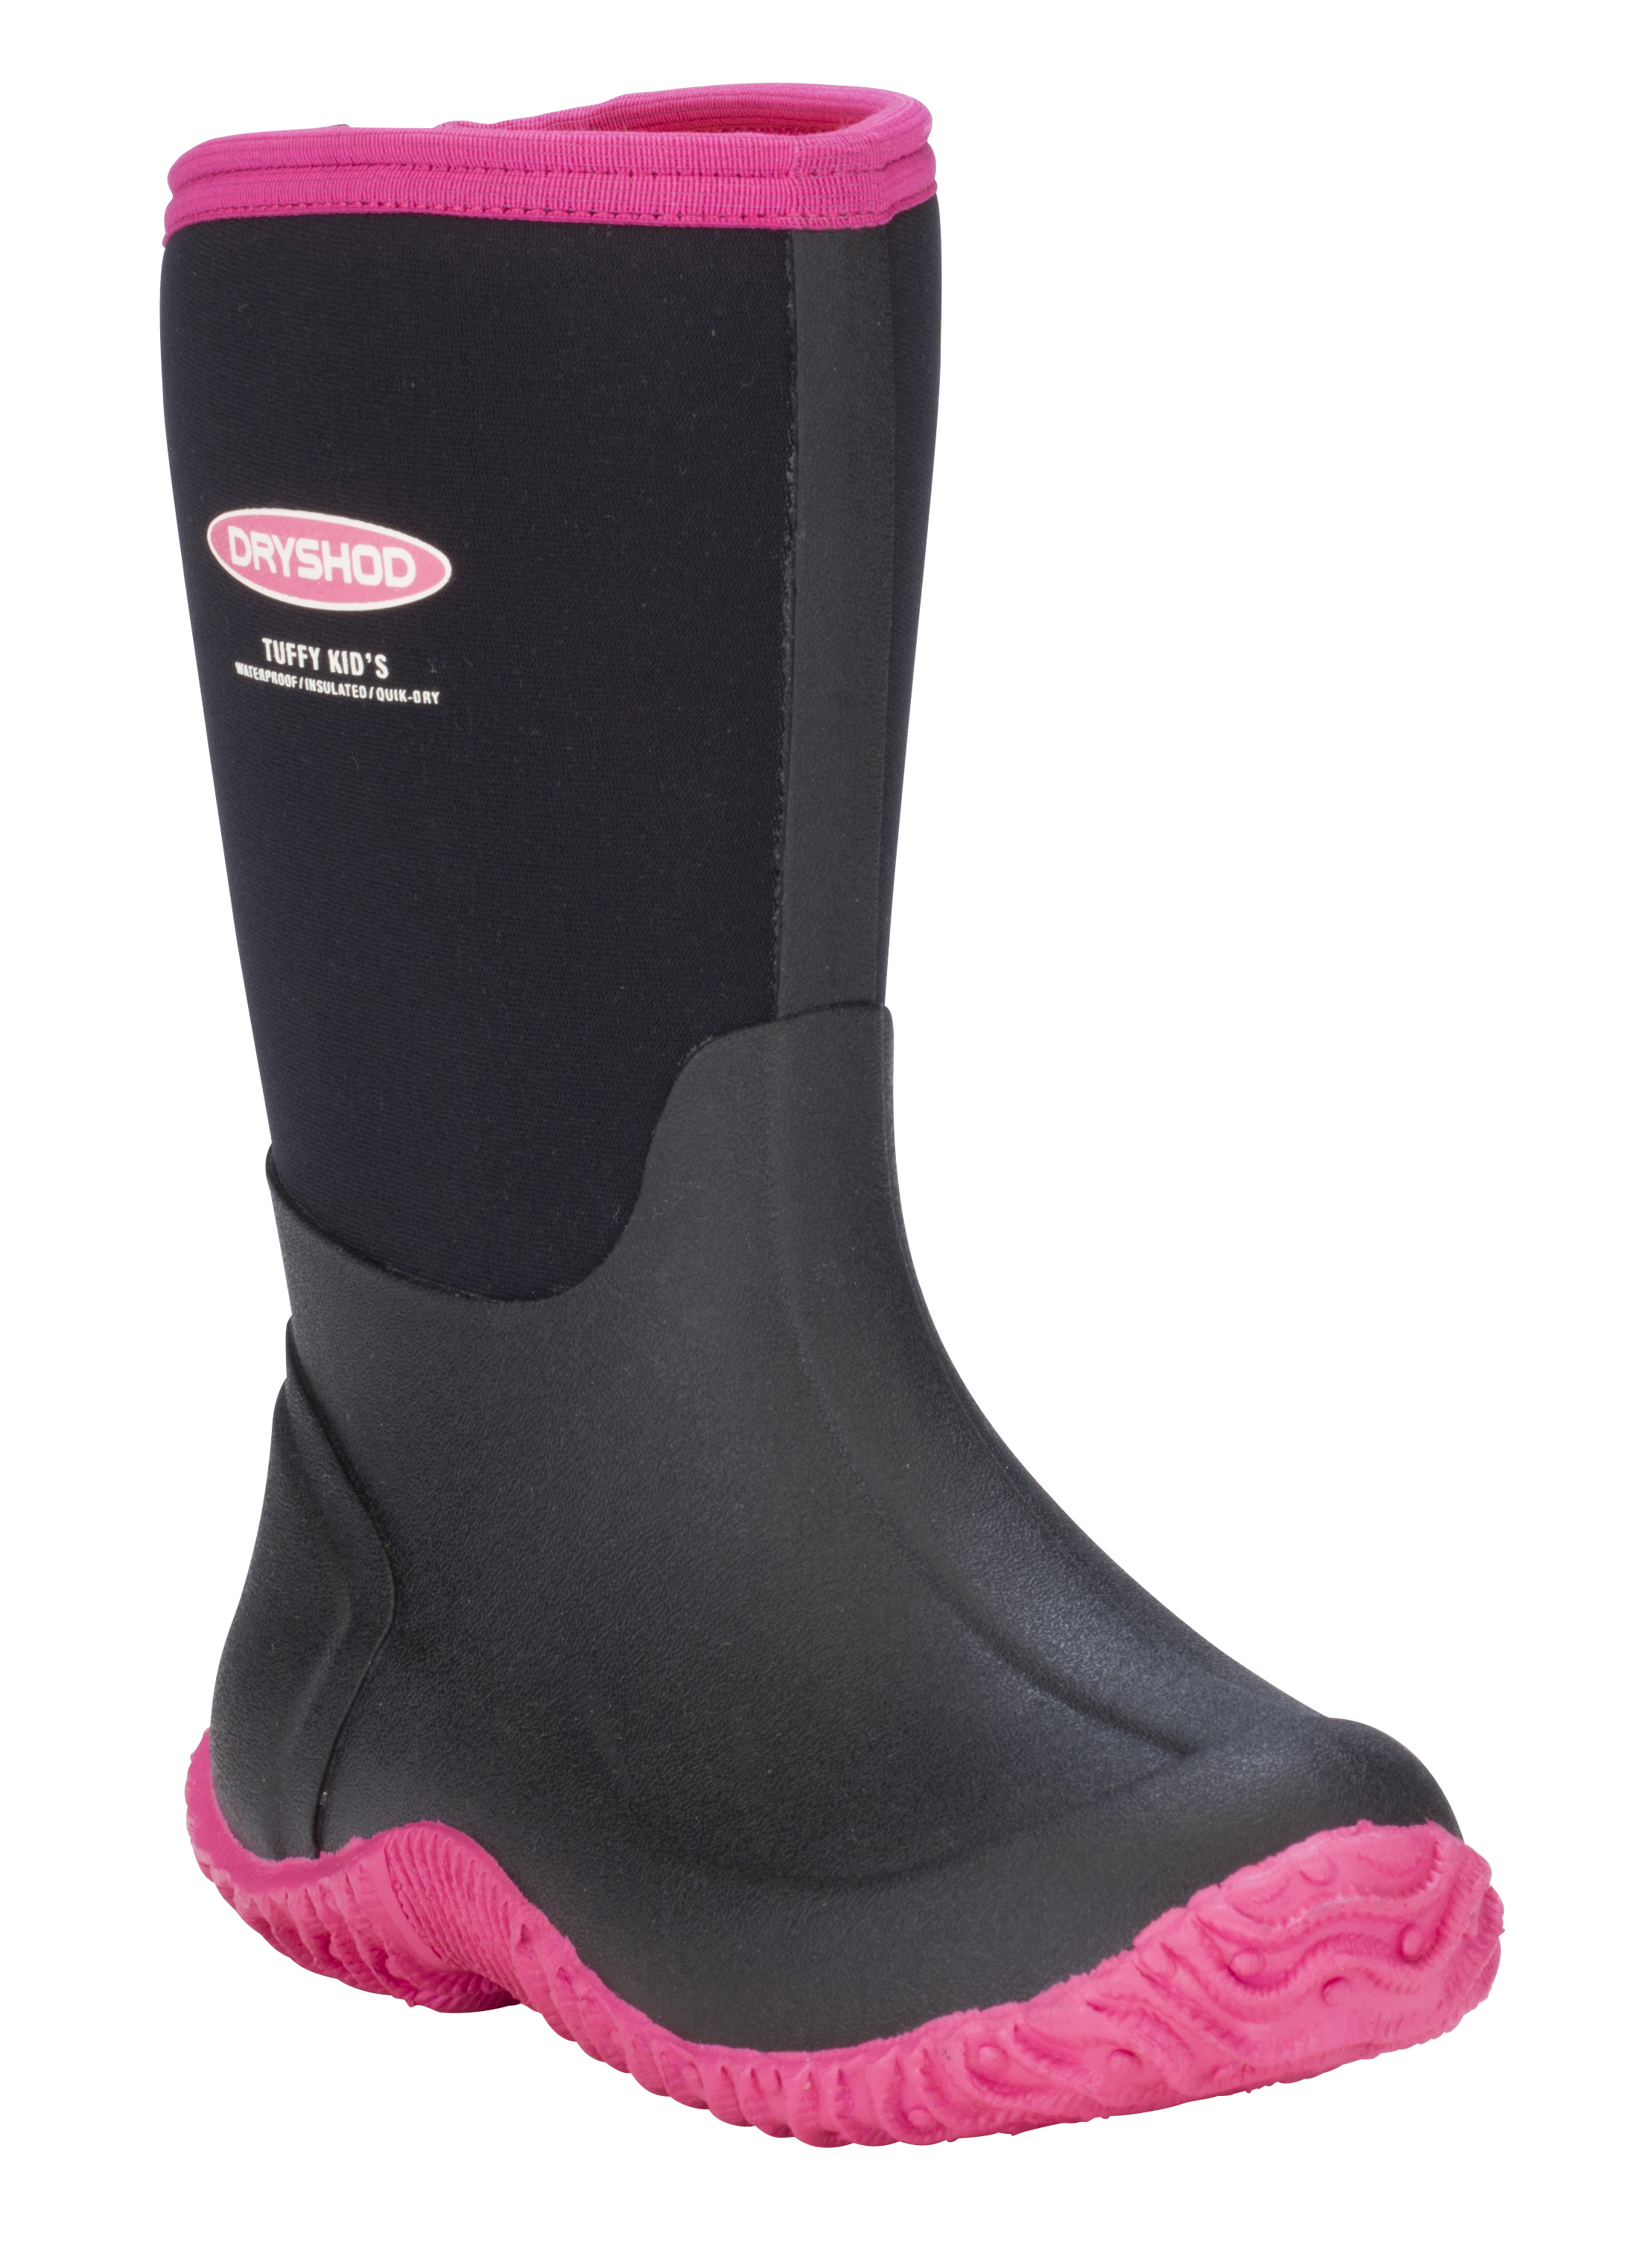 Dryshod Kids' Tuffy All Season Sport Boots - Mid/Hi Cut - Size C11, Black/Pink